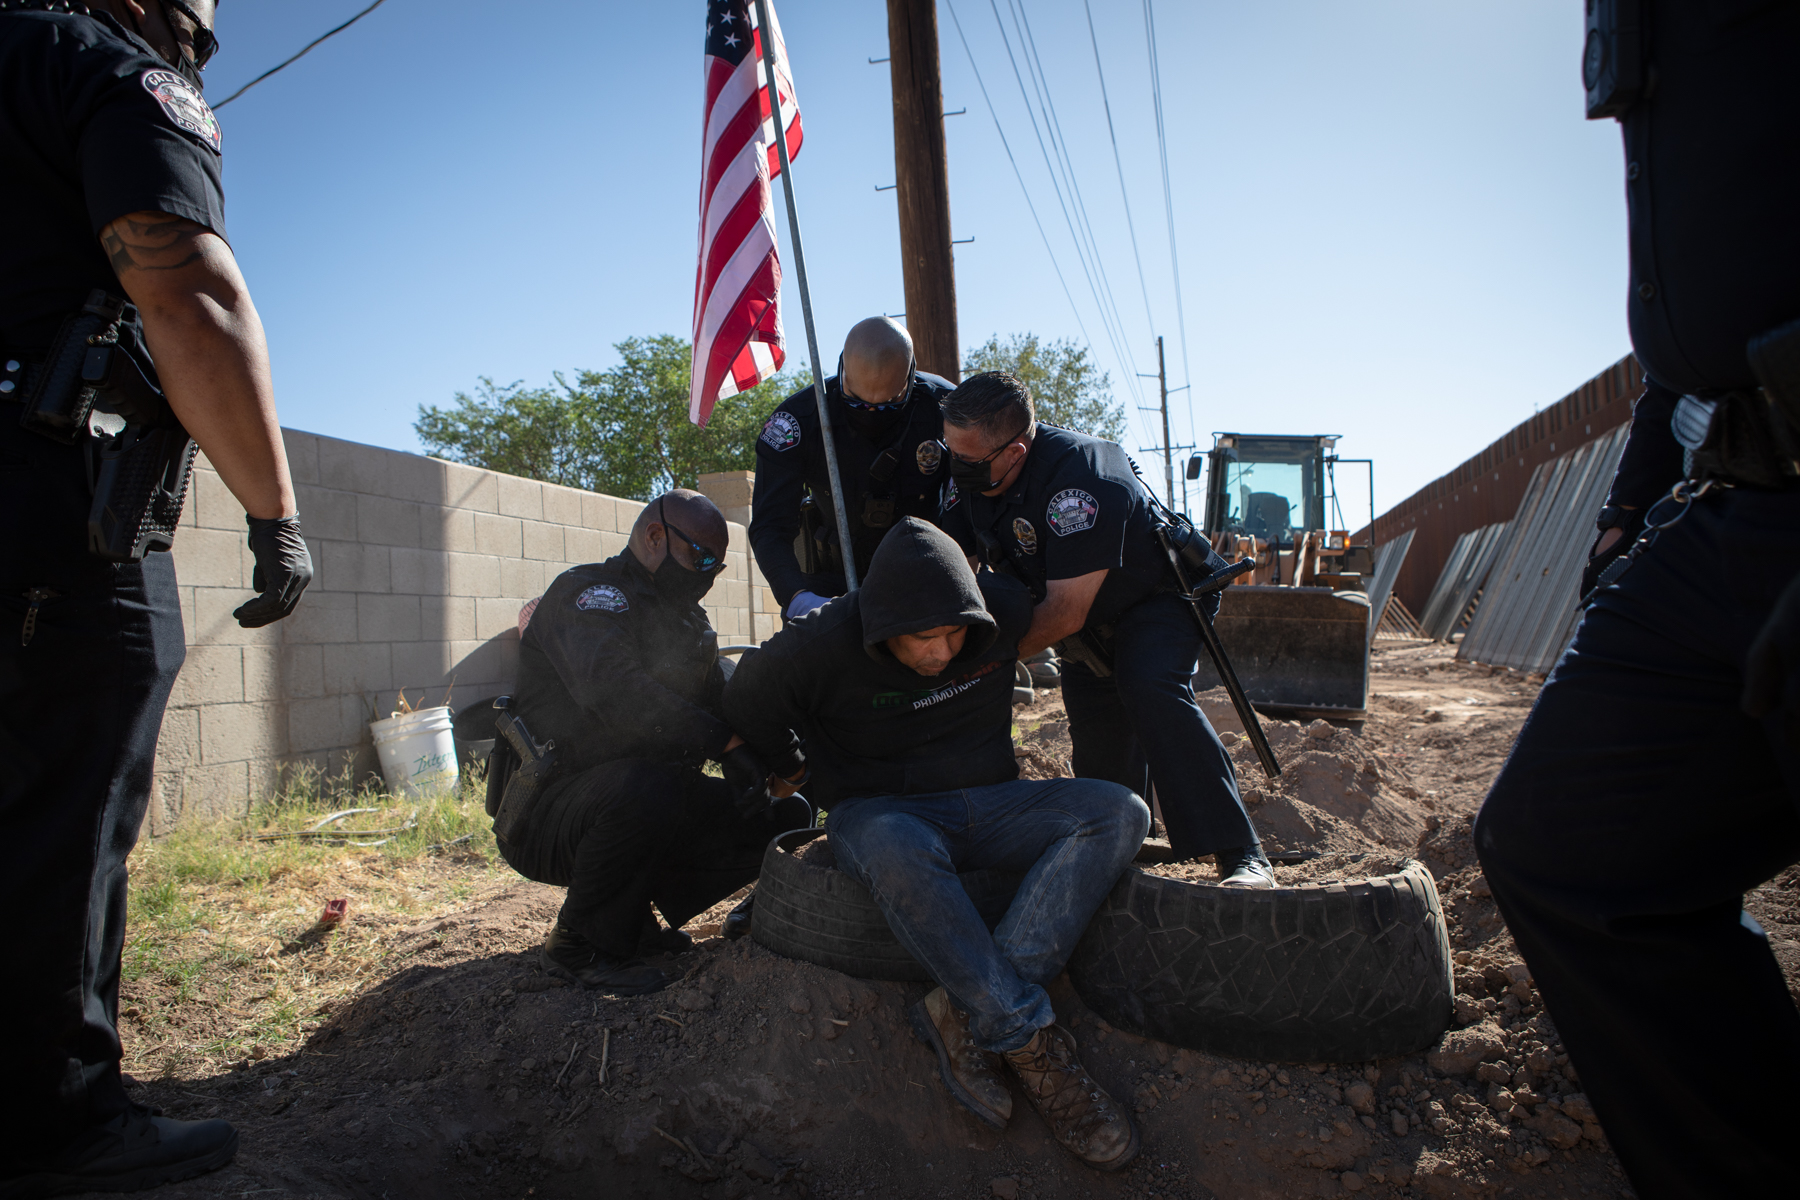 Police clear out farmworker encampment on contentious Calexico land